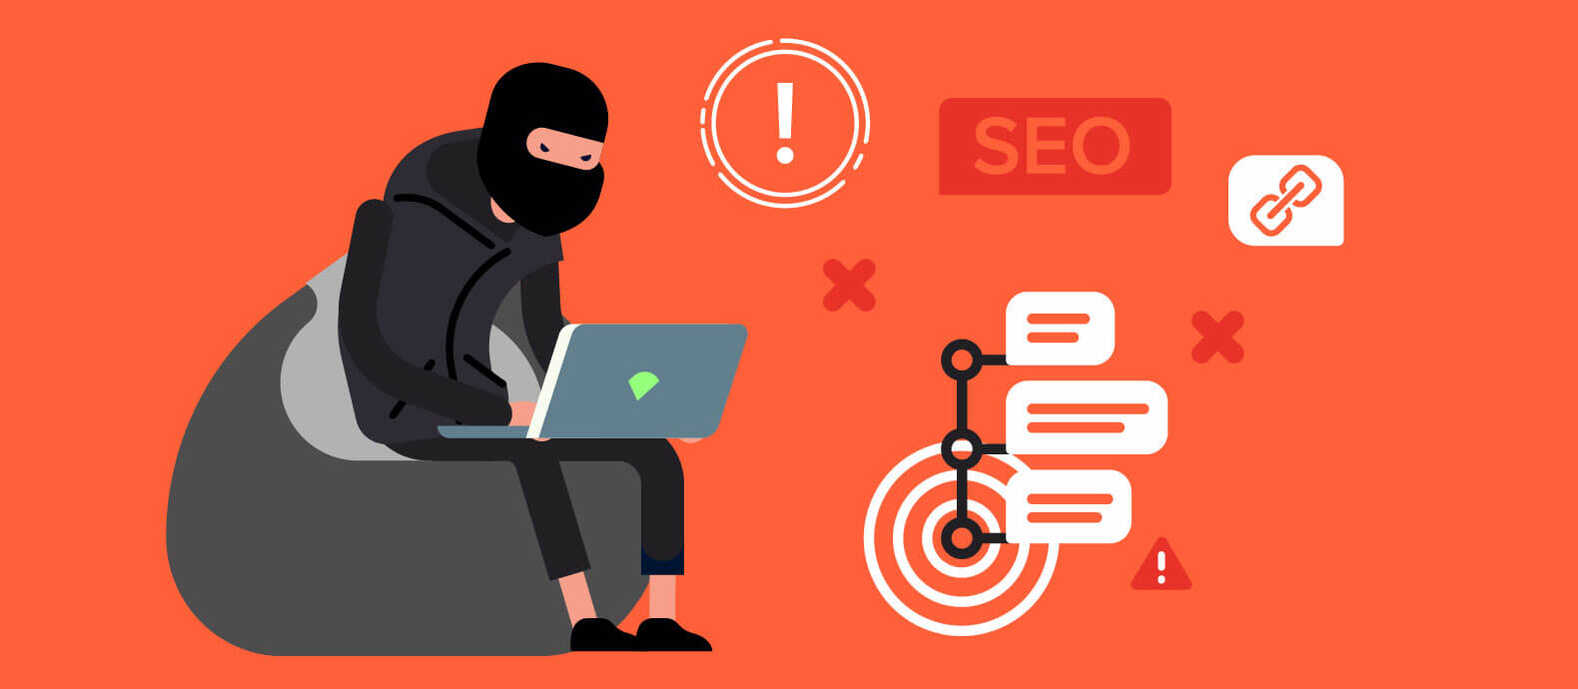 Negative SEO, how to defend your brand against the dark arts